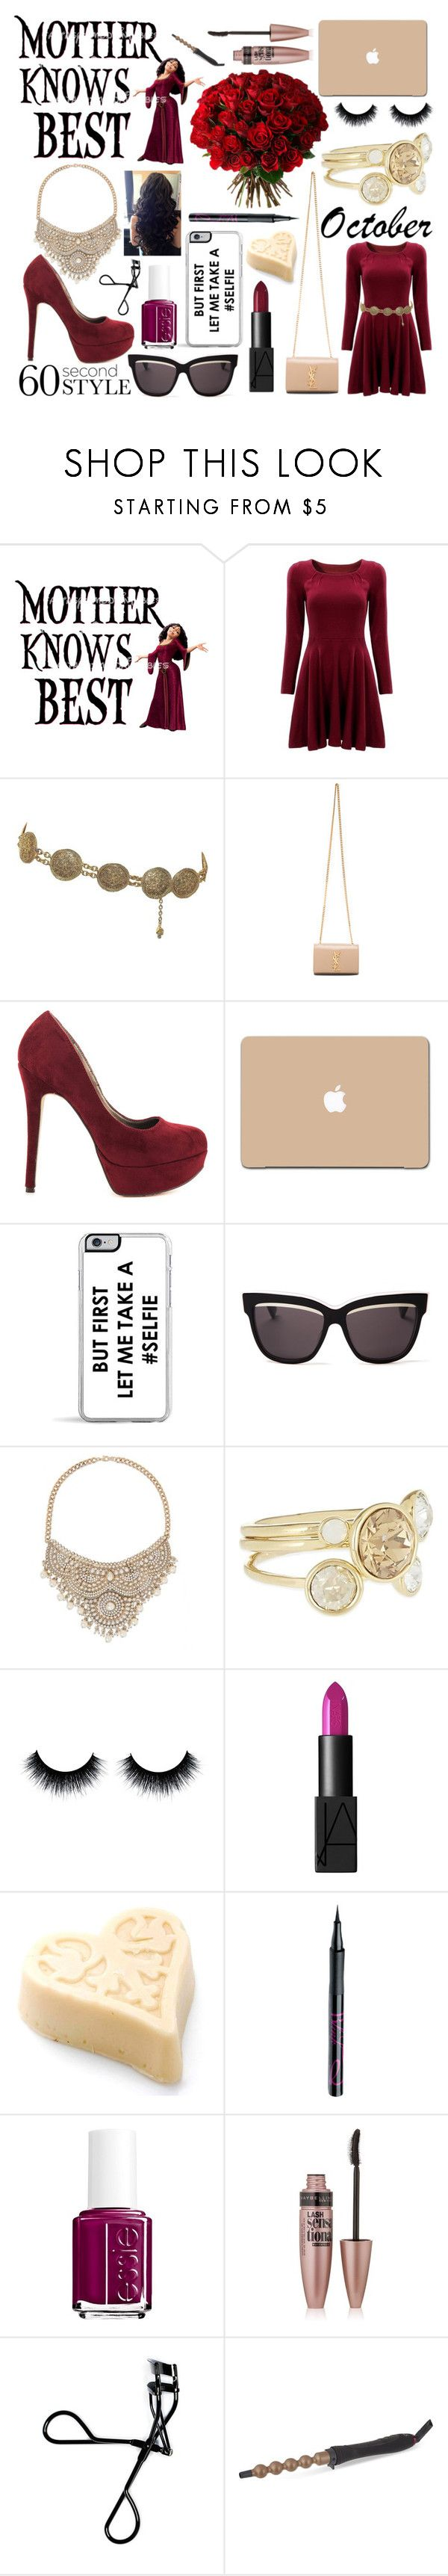 """""""Mother Knows Best"""" by minijessen ❤ liked on Polyvore featuring Disney, Chanel, Yves Saint Laurent, Michael Antonio, Cadeau, 3M, Zero Gravity, Christian Dior, Bebe and Ted Baker"""